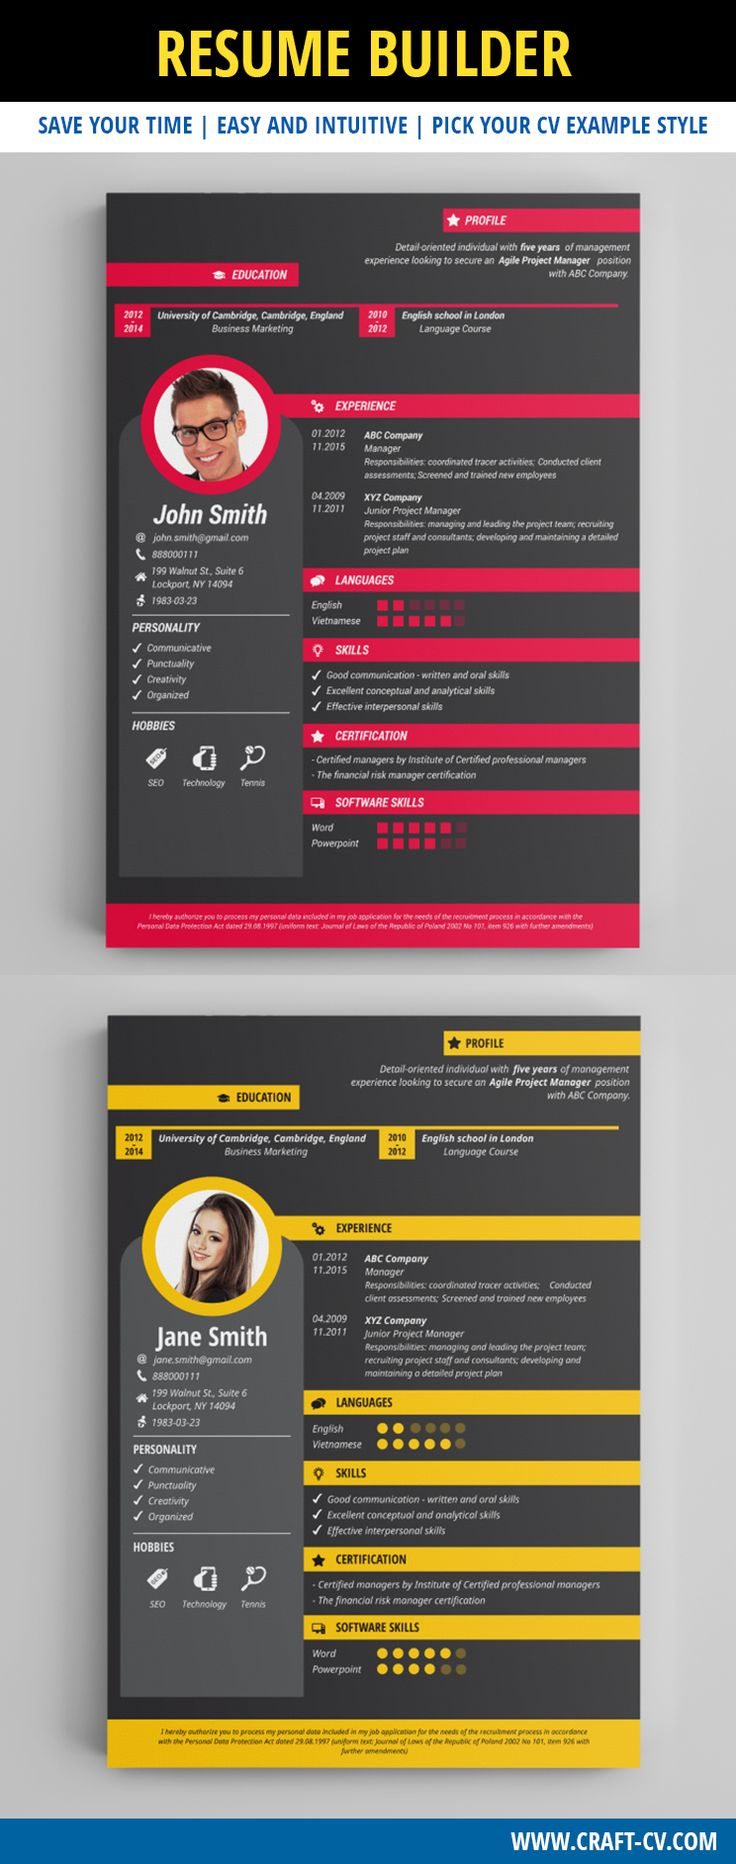 apartment manager resume%0A Creative CV Examples  Resume  CV  Builder  resume  cv  creativecv